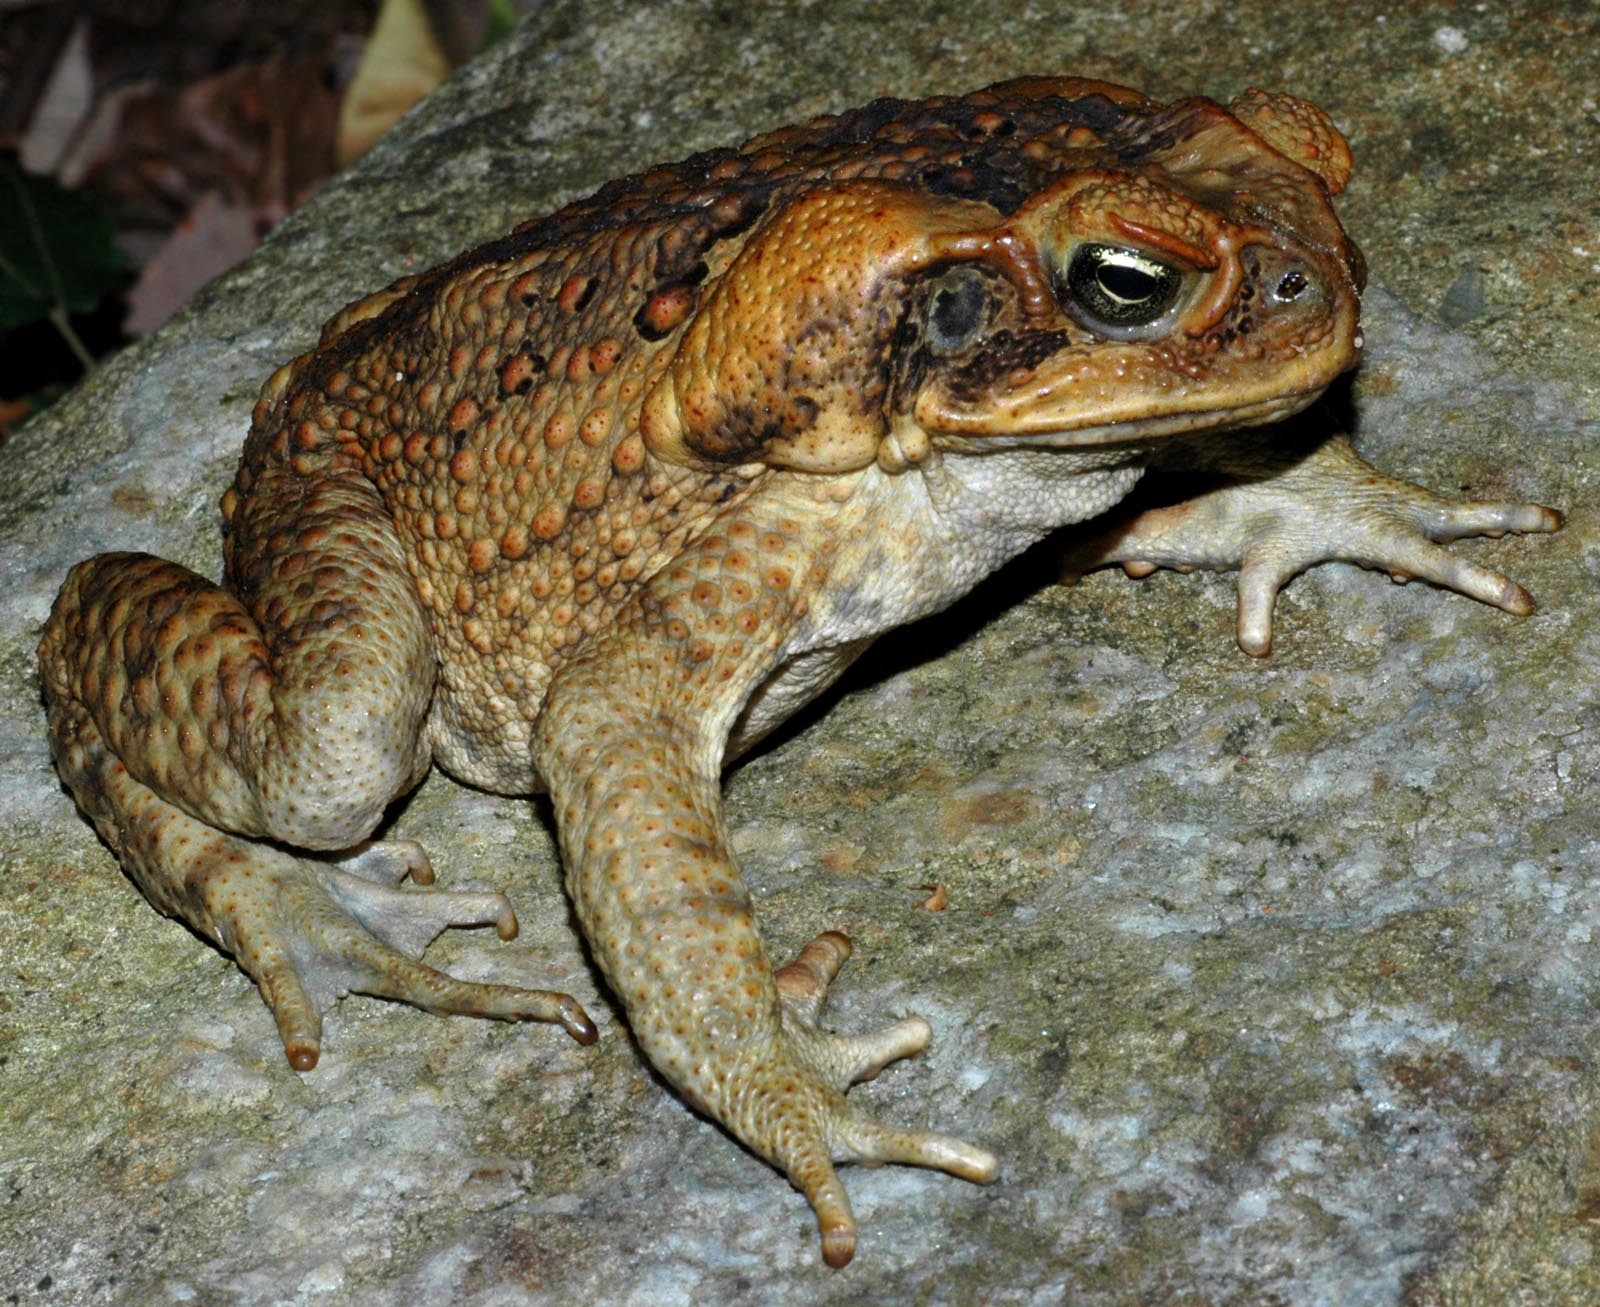 Australia's Invasive Cane Toads Have Evolved To Hop Even Faster